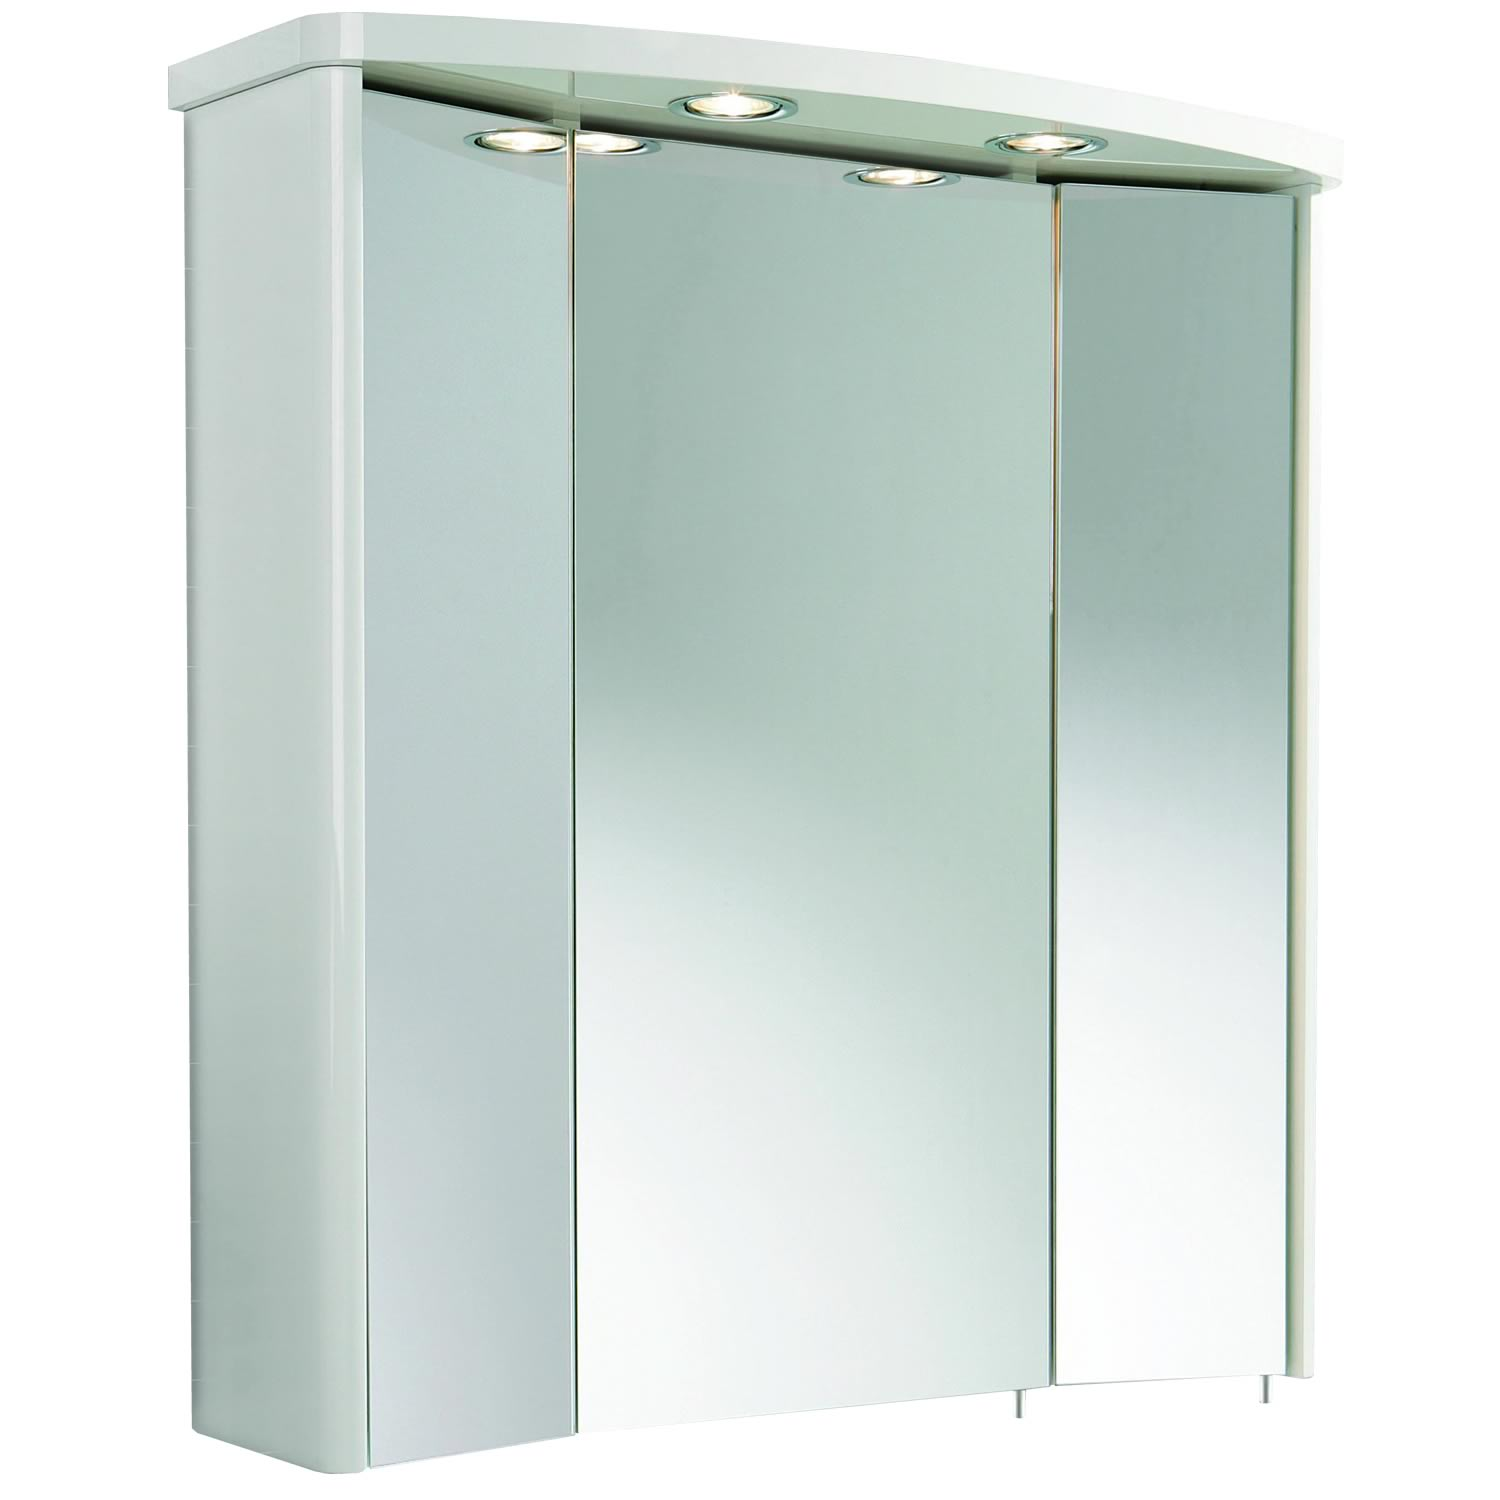 Image of: Top Mirrored Cabinet